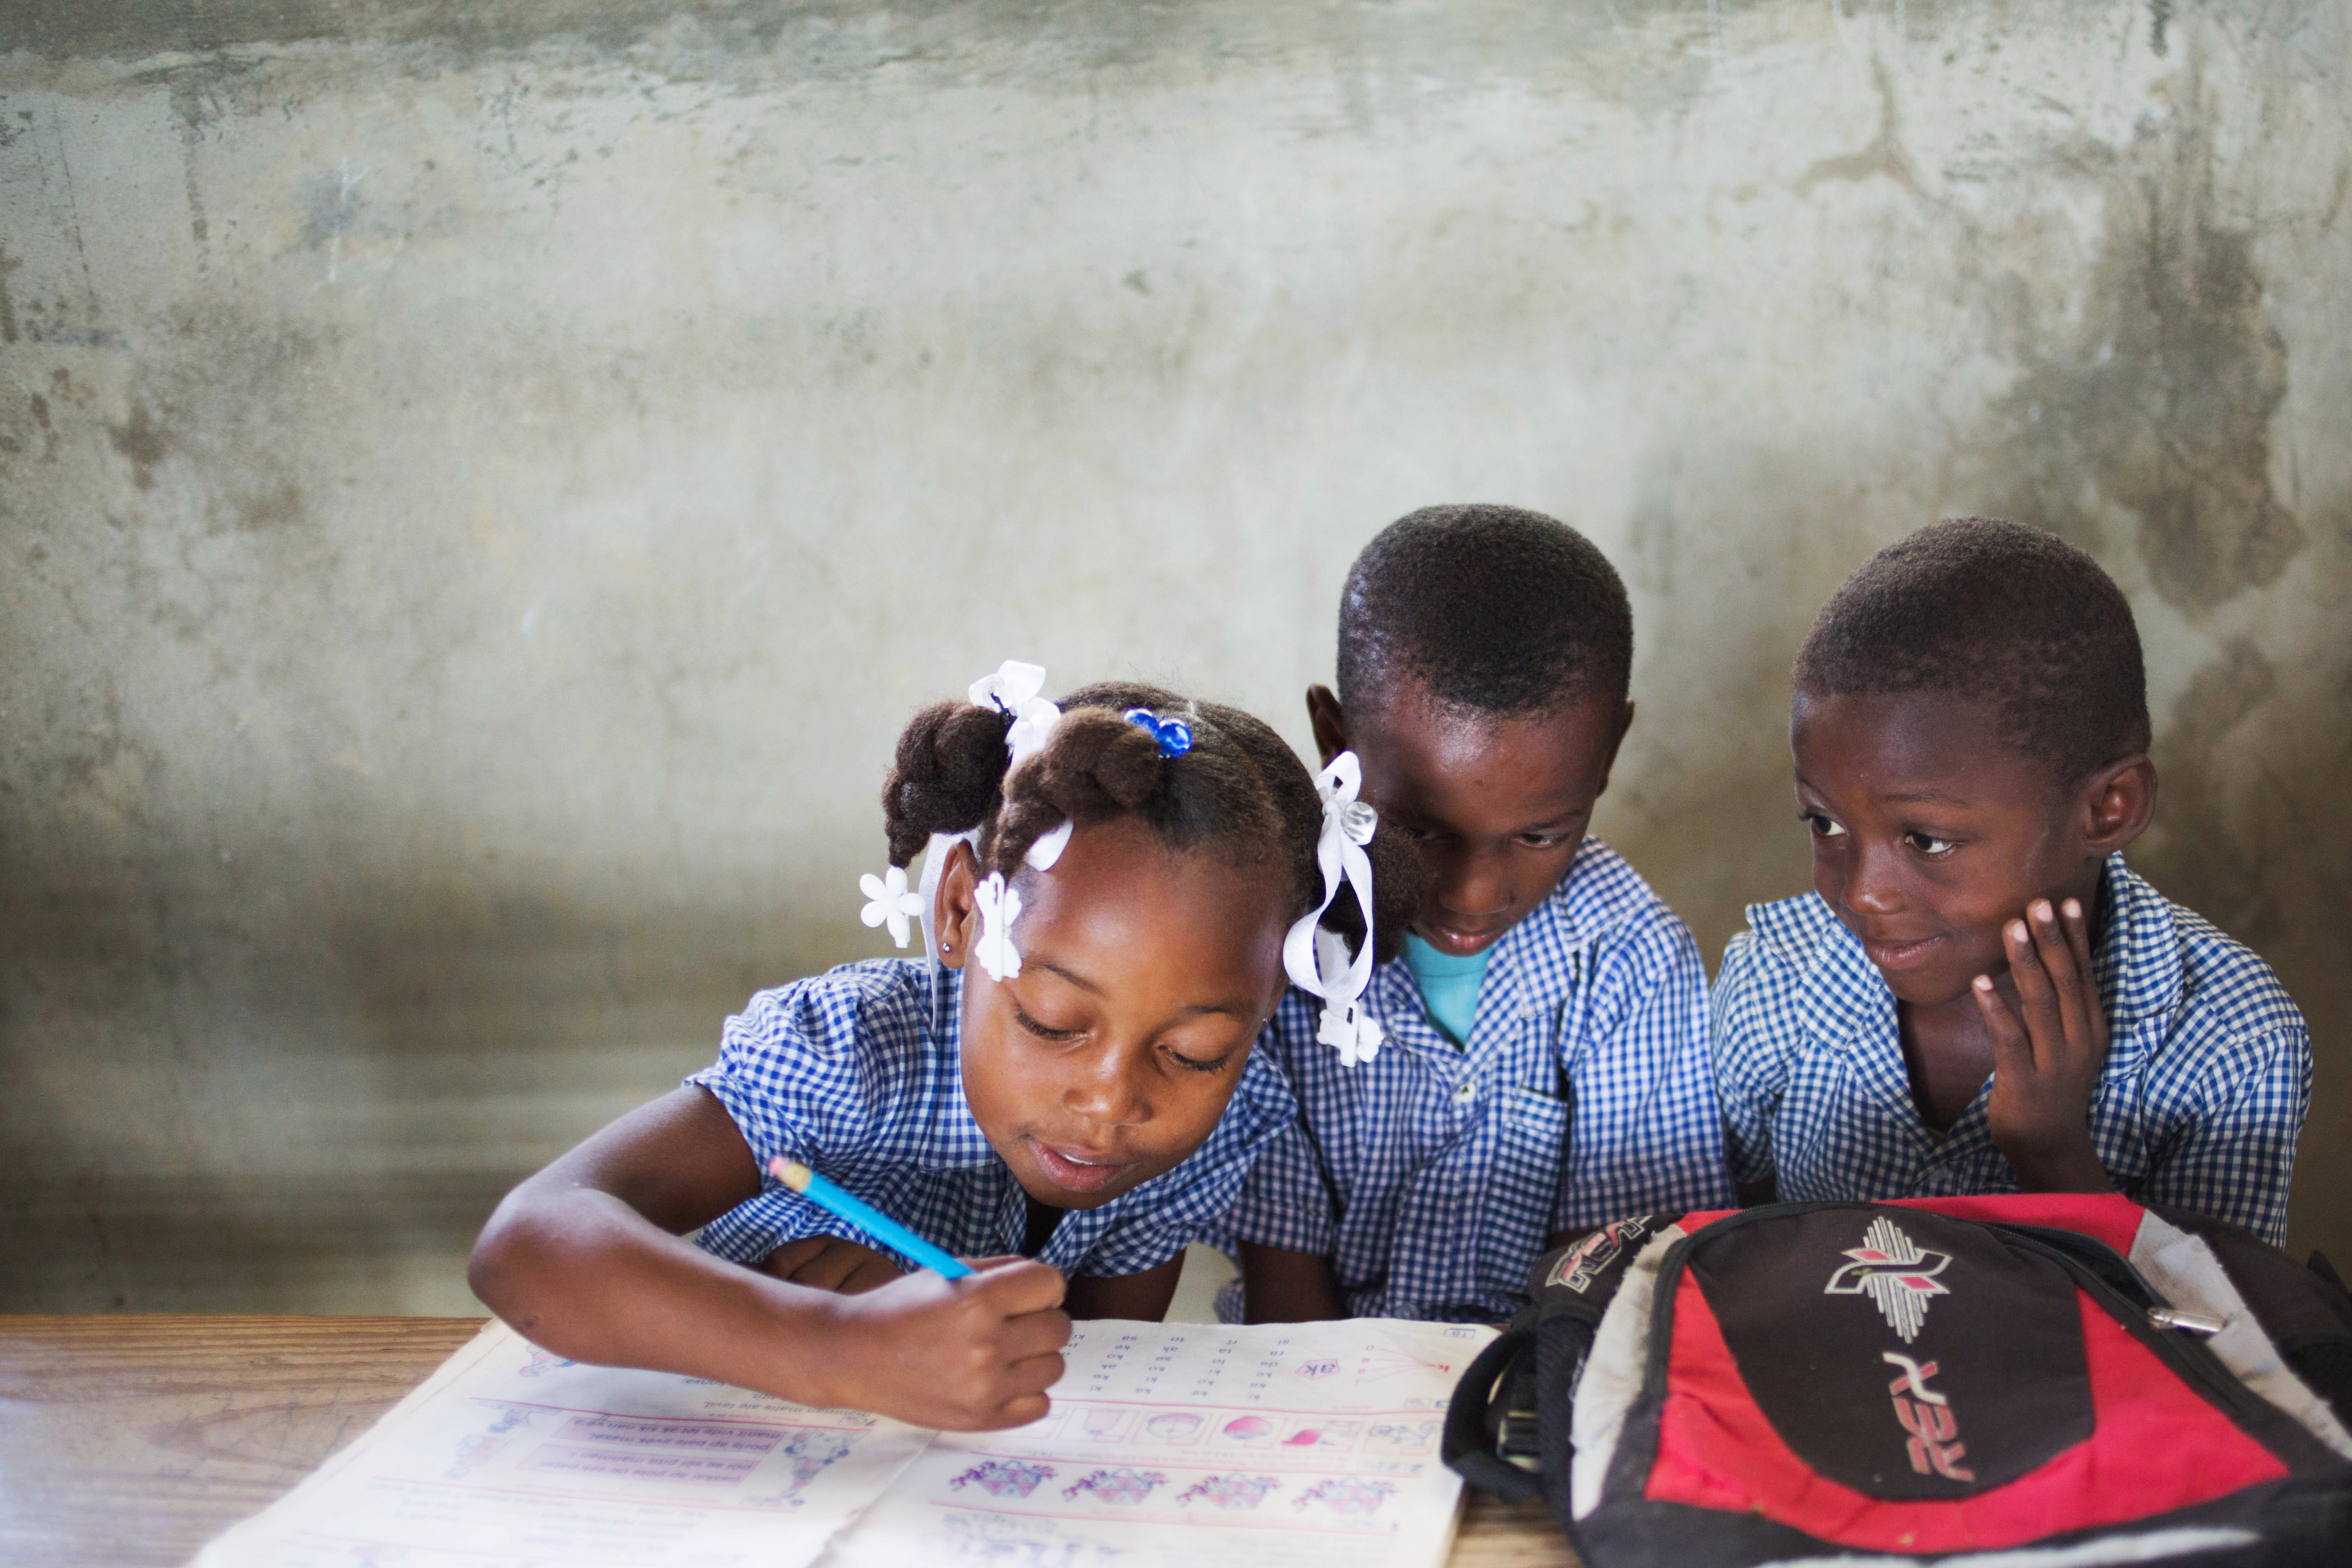 Three students in Haiti working on their assignment in a classroom.